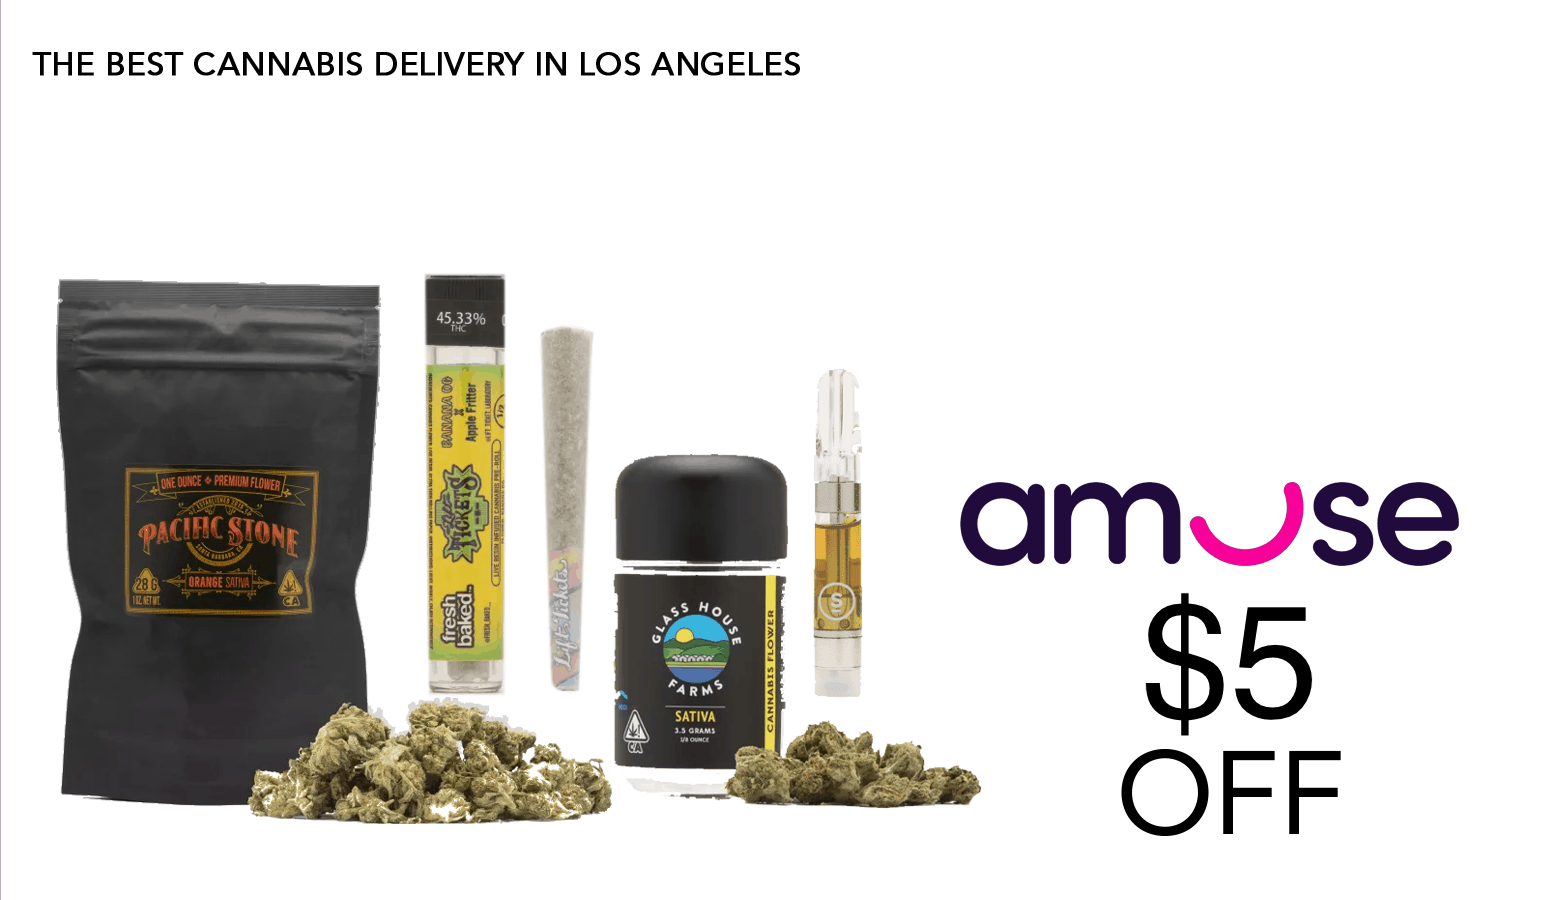 Amuse - $5 off - cannabis delivery california